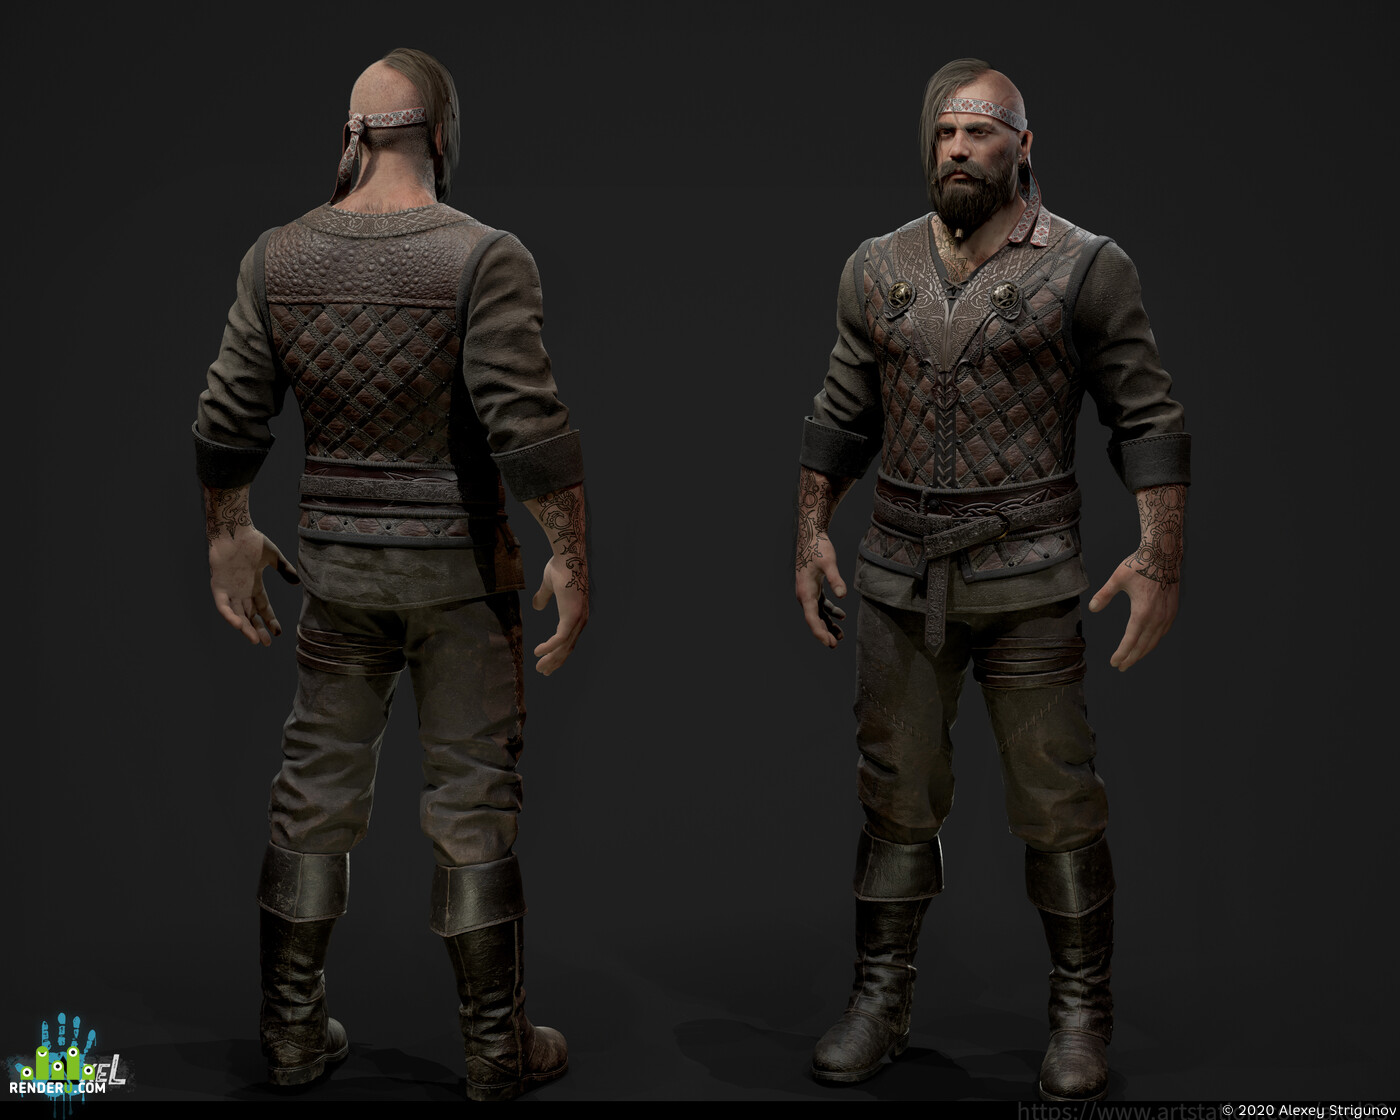 Digital 3D, Real-time, 3D Printing, game art, character design, Character Modeling, Character, Concepting, Fantasy